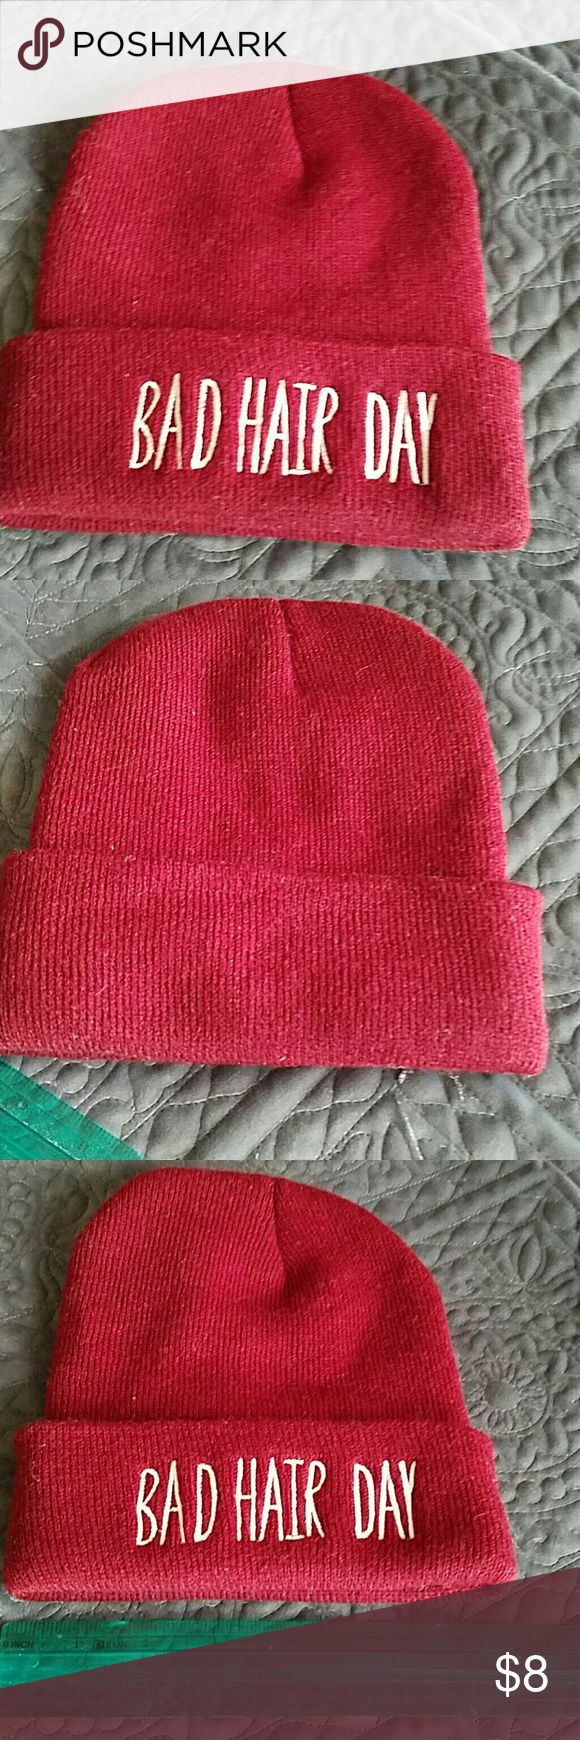 Bad Hair Day cap New without tags.  Burgandy color.  White lettering.  Tried on but never worn. Accessories Hats